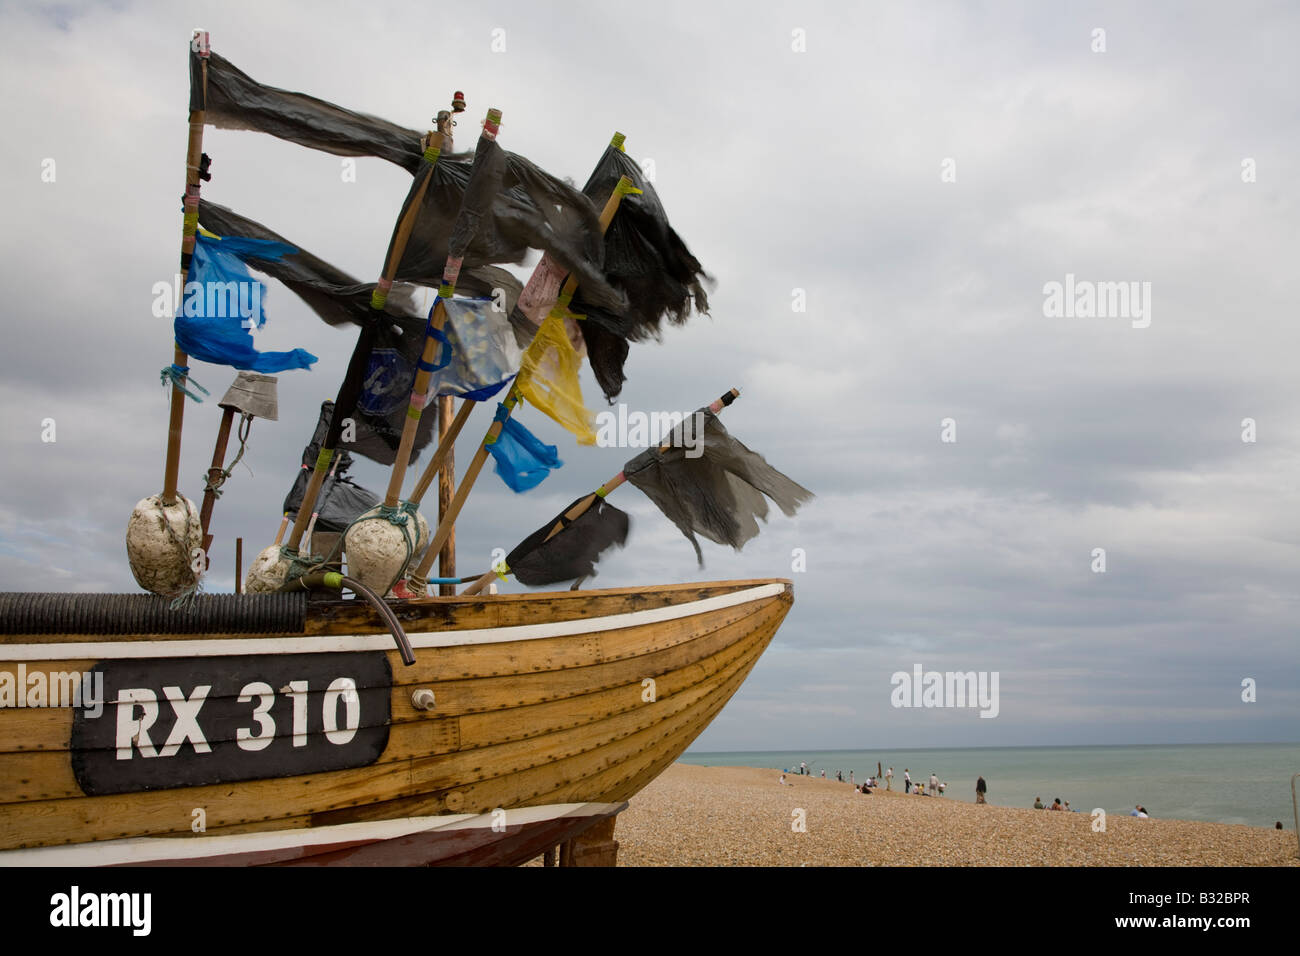 Fishing boat, Rock-a-Nore area, Hastings, East Sussex, England - Stock Image